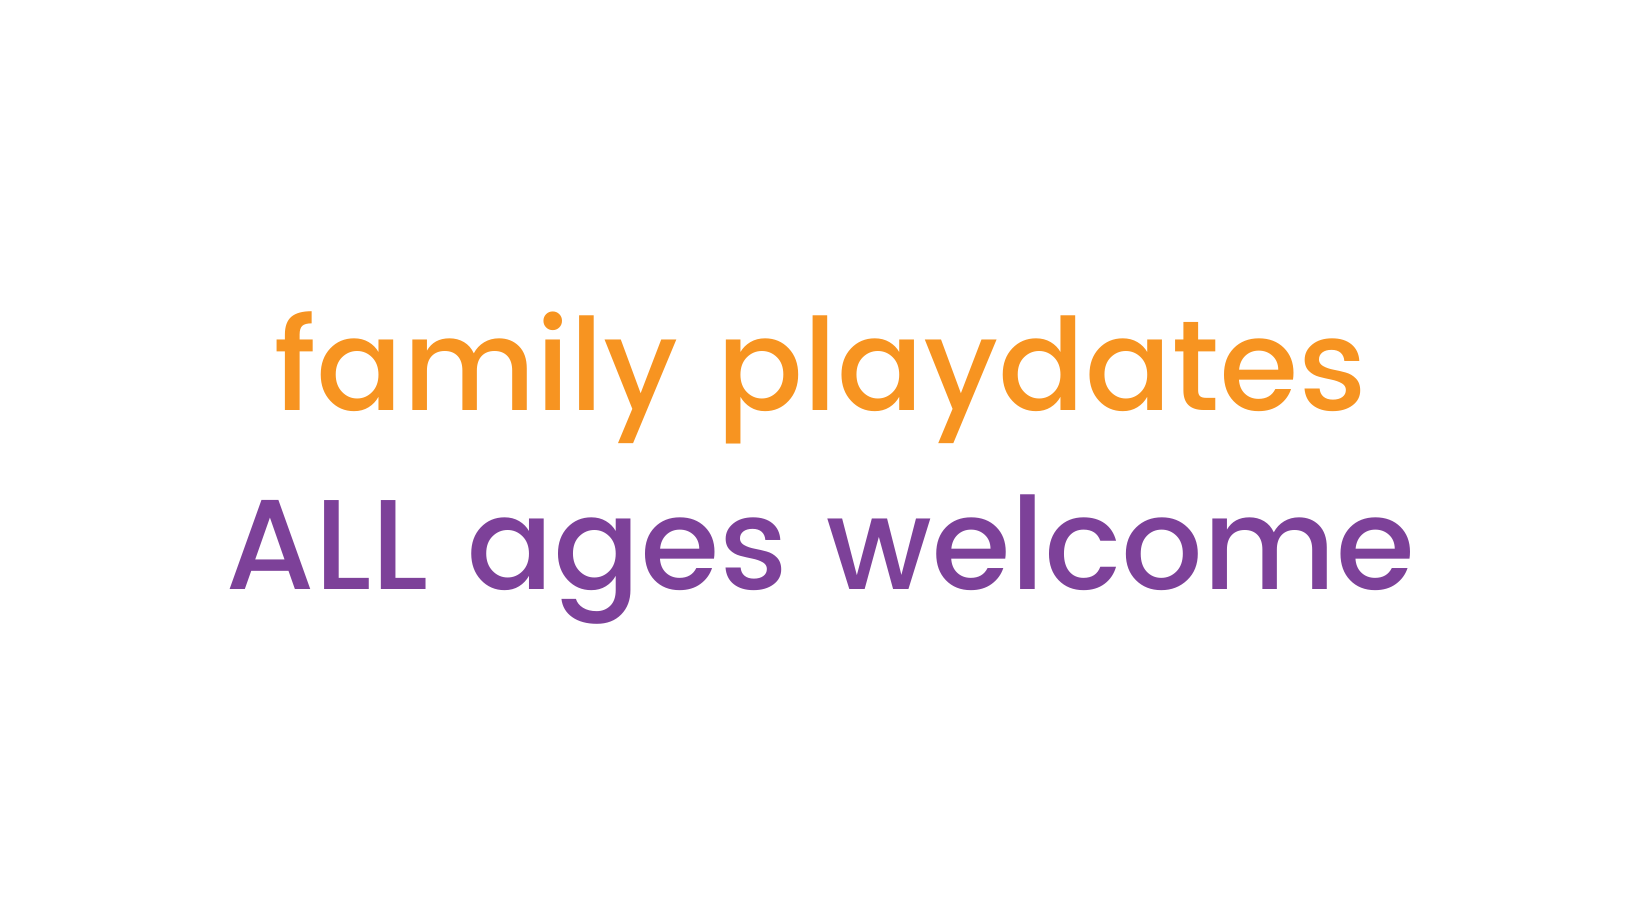 family playdates all ages welcome